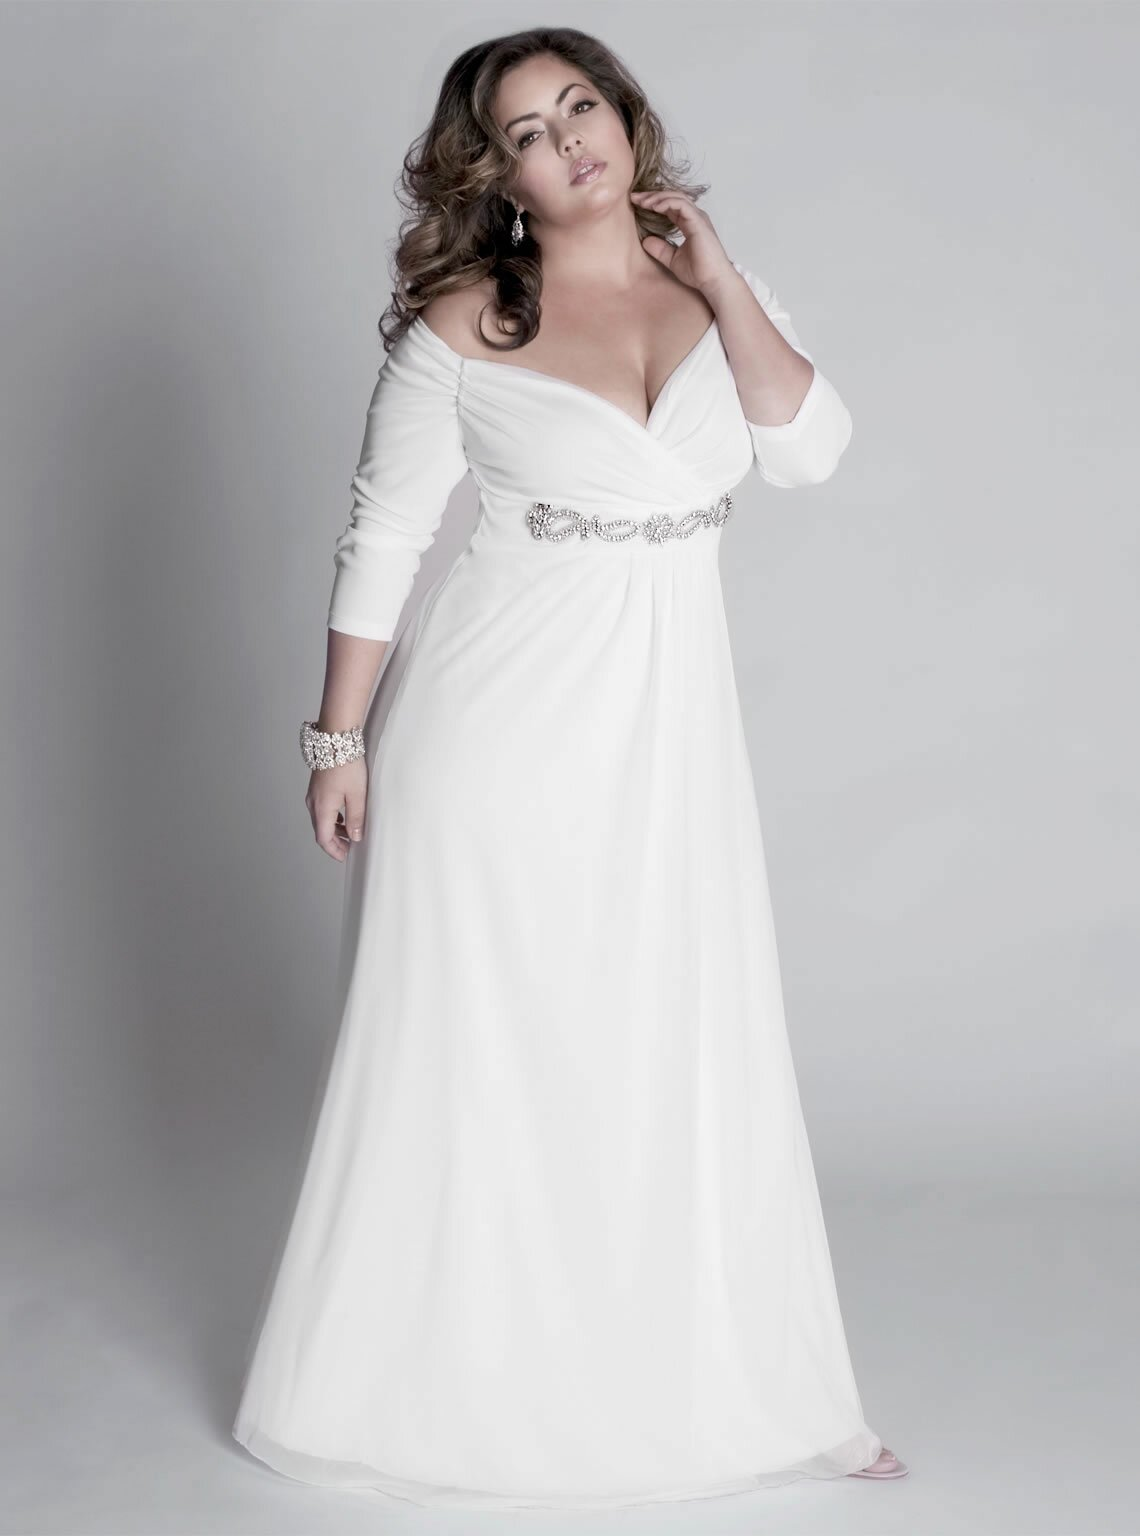 Wedding dresses plus size with sleeves Photo - 5